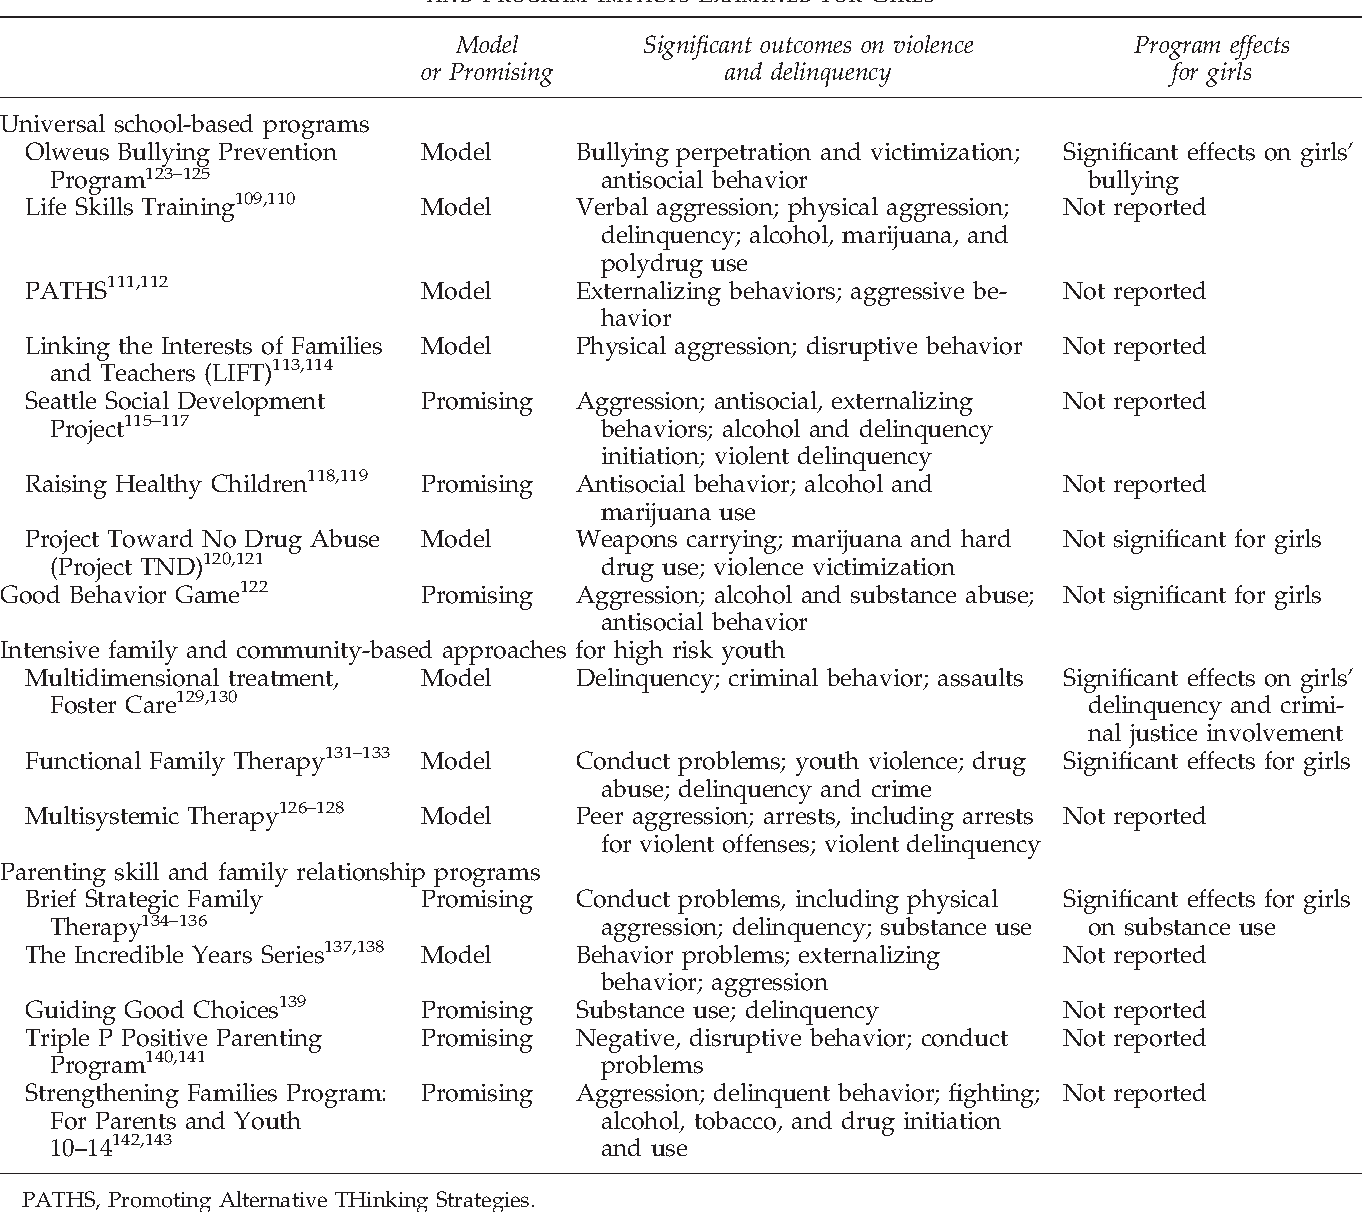 Table 1 from preventing youth violence perpetration among girls descriptive information about evidence based blueprints model and promising programs and program malvernweather Choice Image